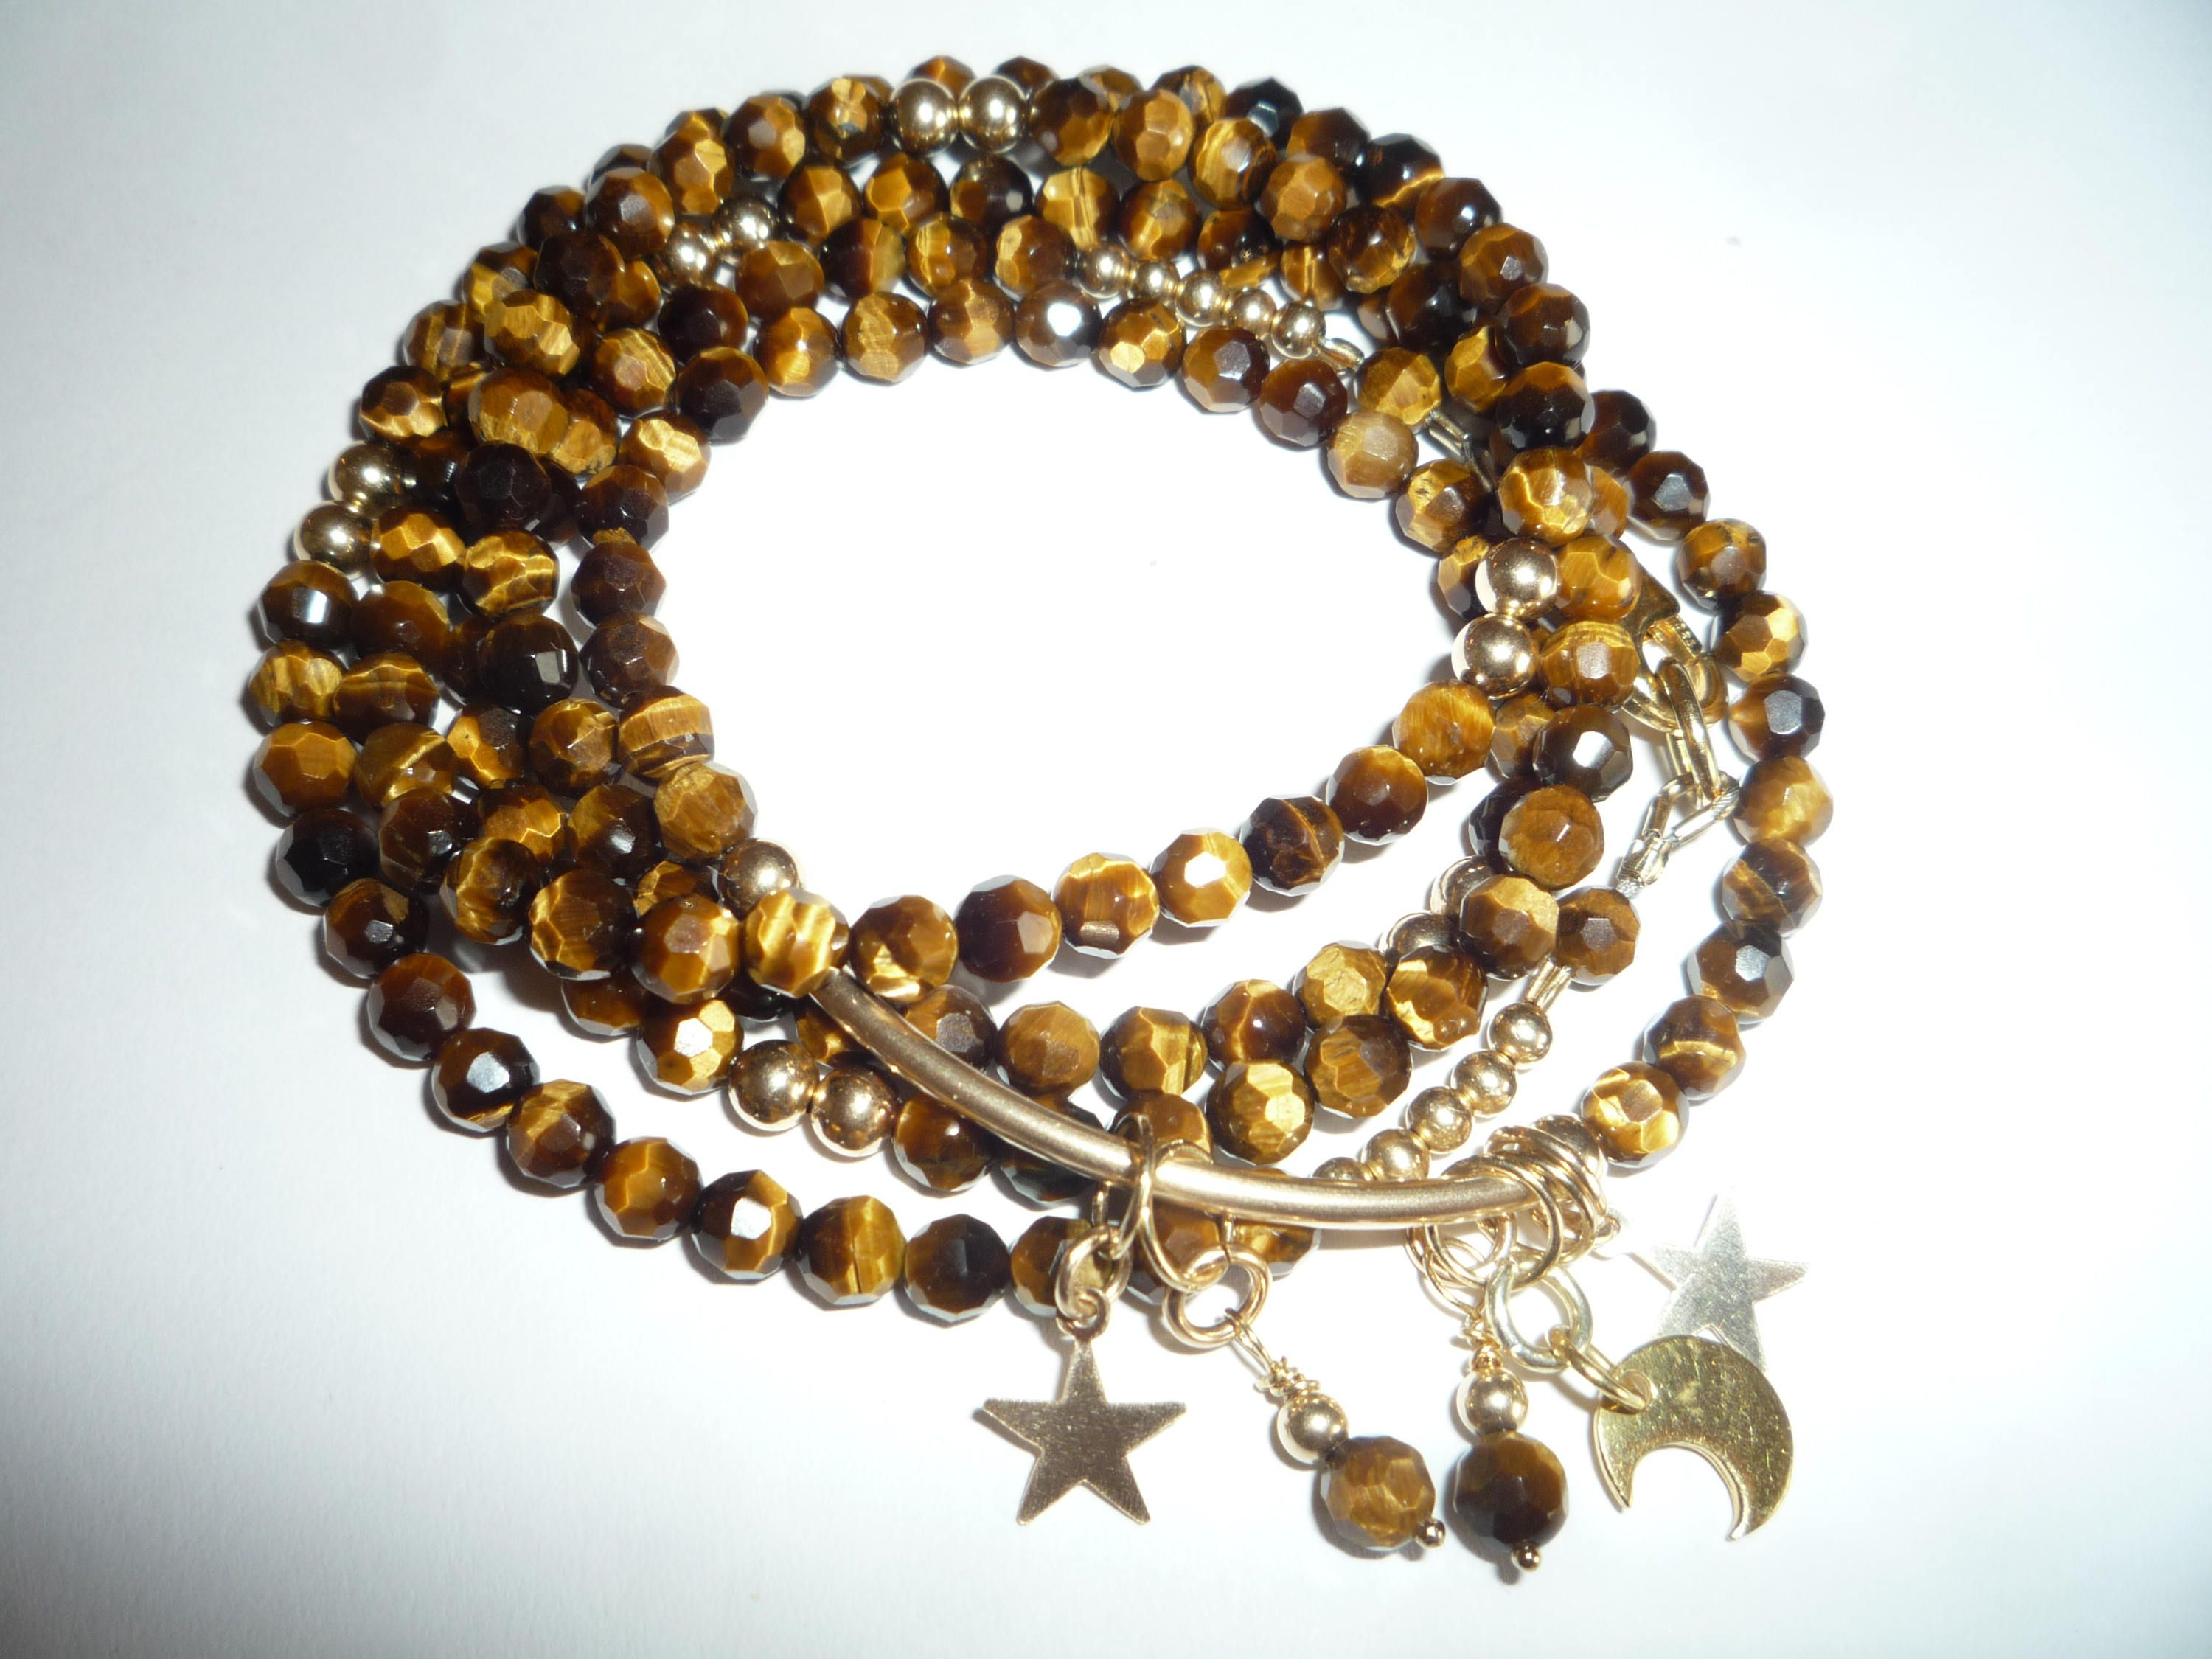 long tiger necklace gemstone venice eyes store rosary product jewelry that eye s citrine stone tigers handmade